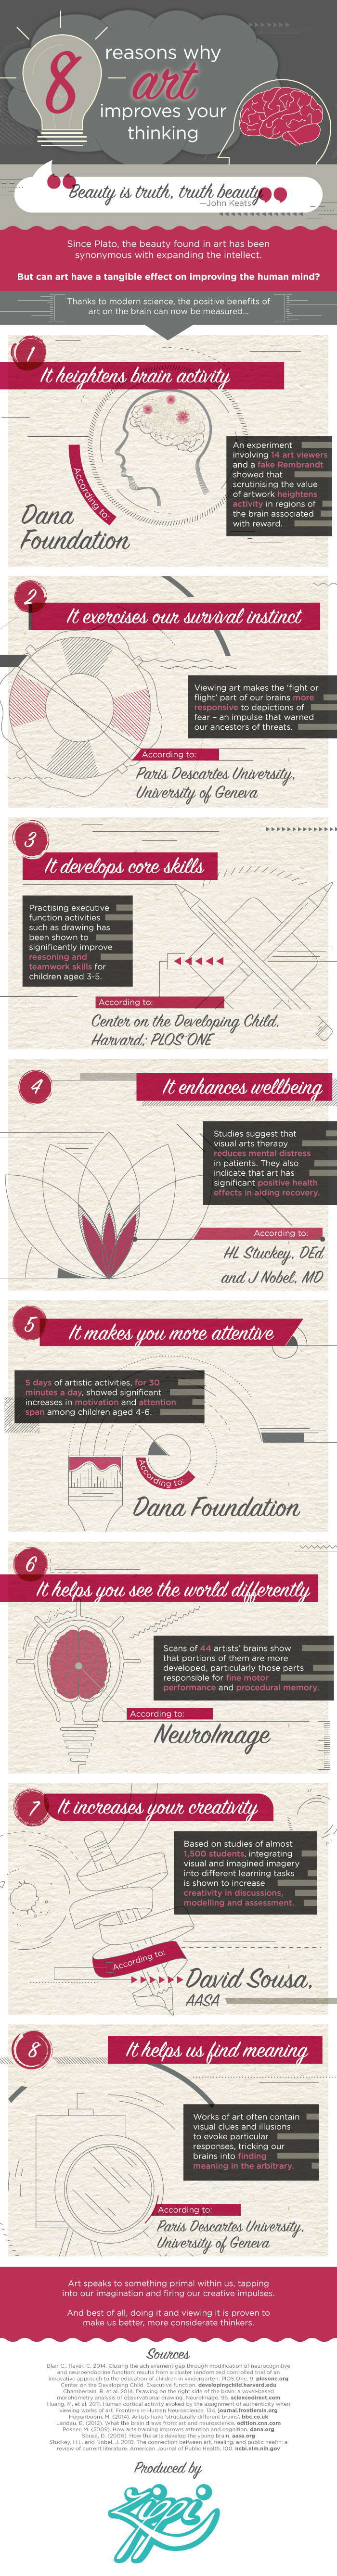 How Art Improves Thinking Infographic